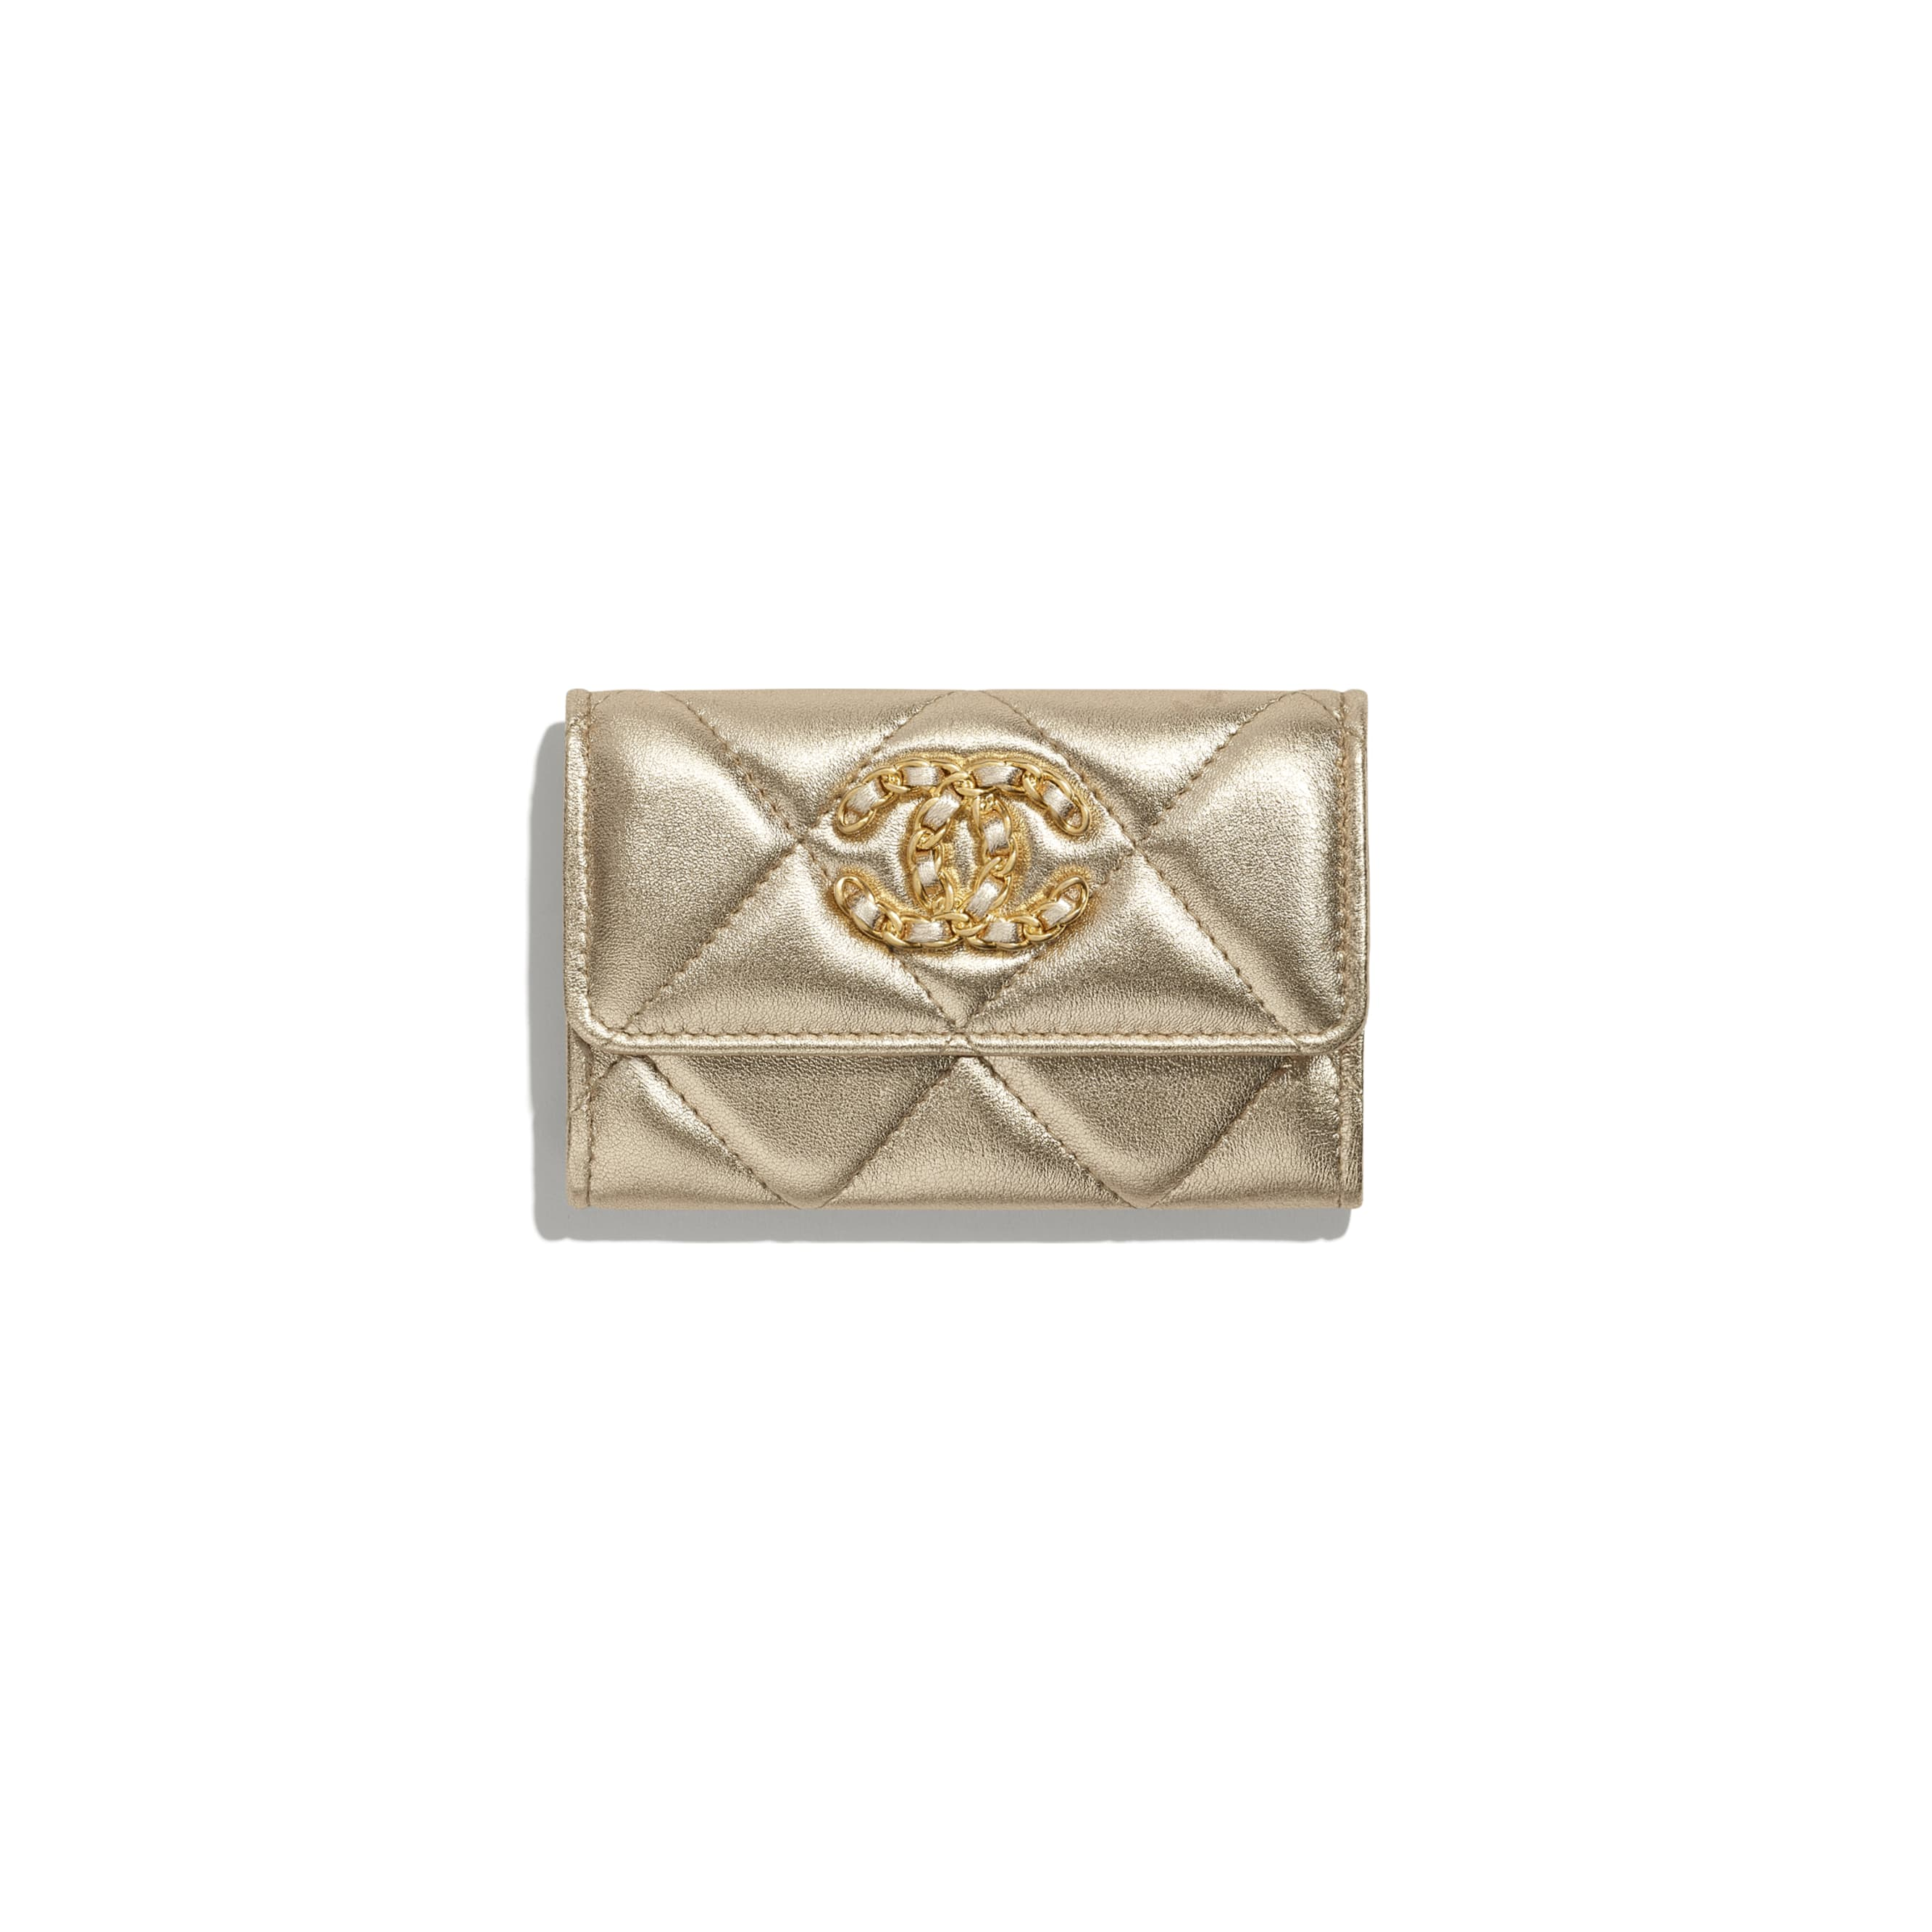 CHANEL 19 Flap Card Holder - Gold - Metallic Lambskin, Gold-Tone, Silver-Tone & Ruthenium-Finish Metal - CHANEL - Default view - see standard sized version